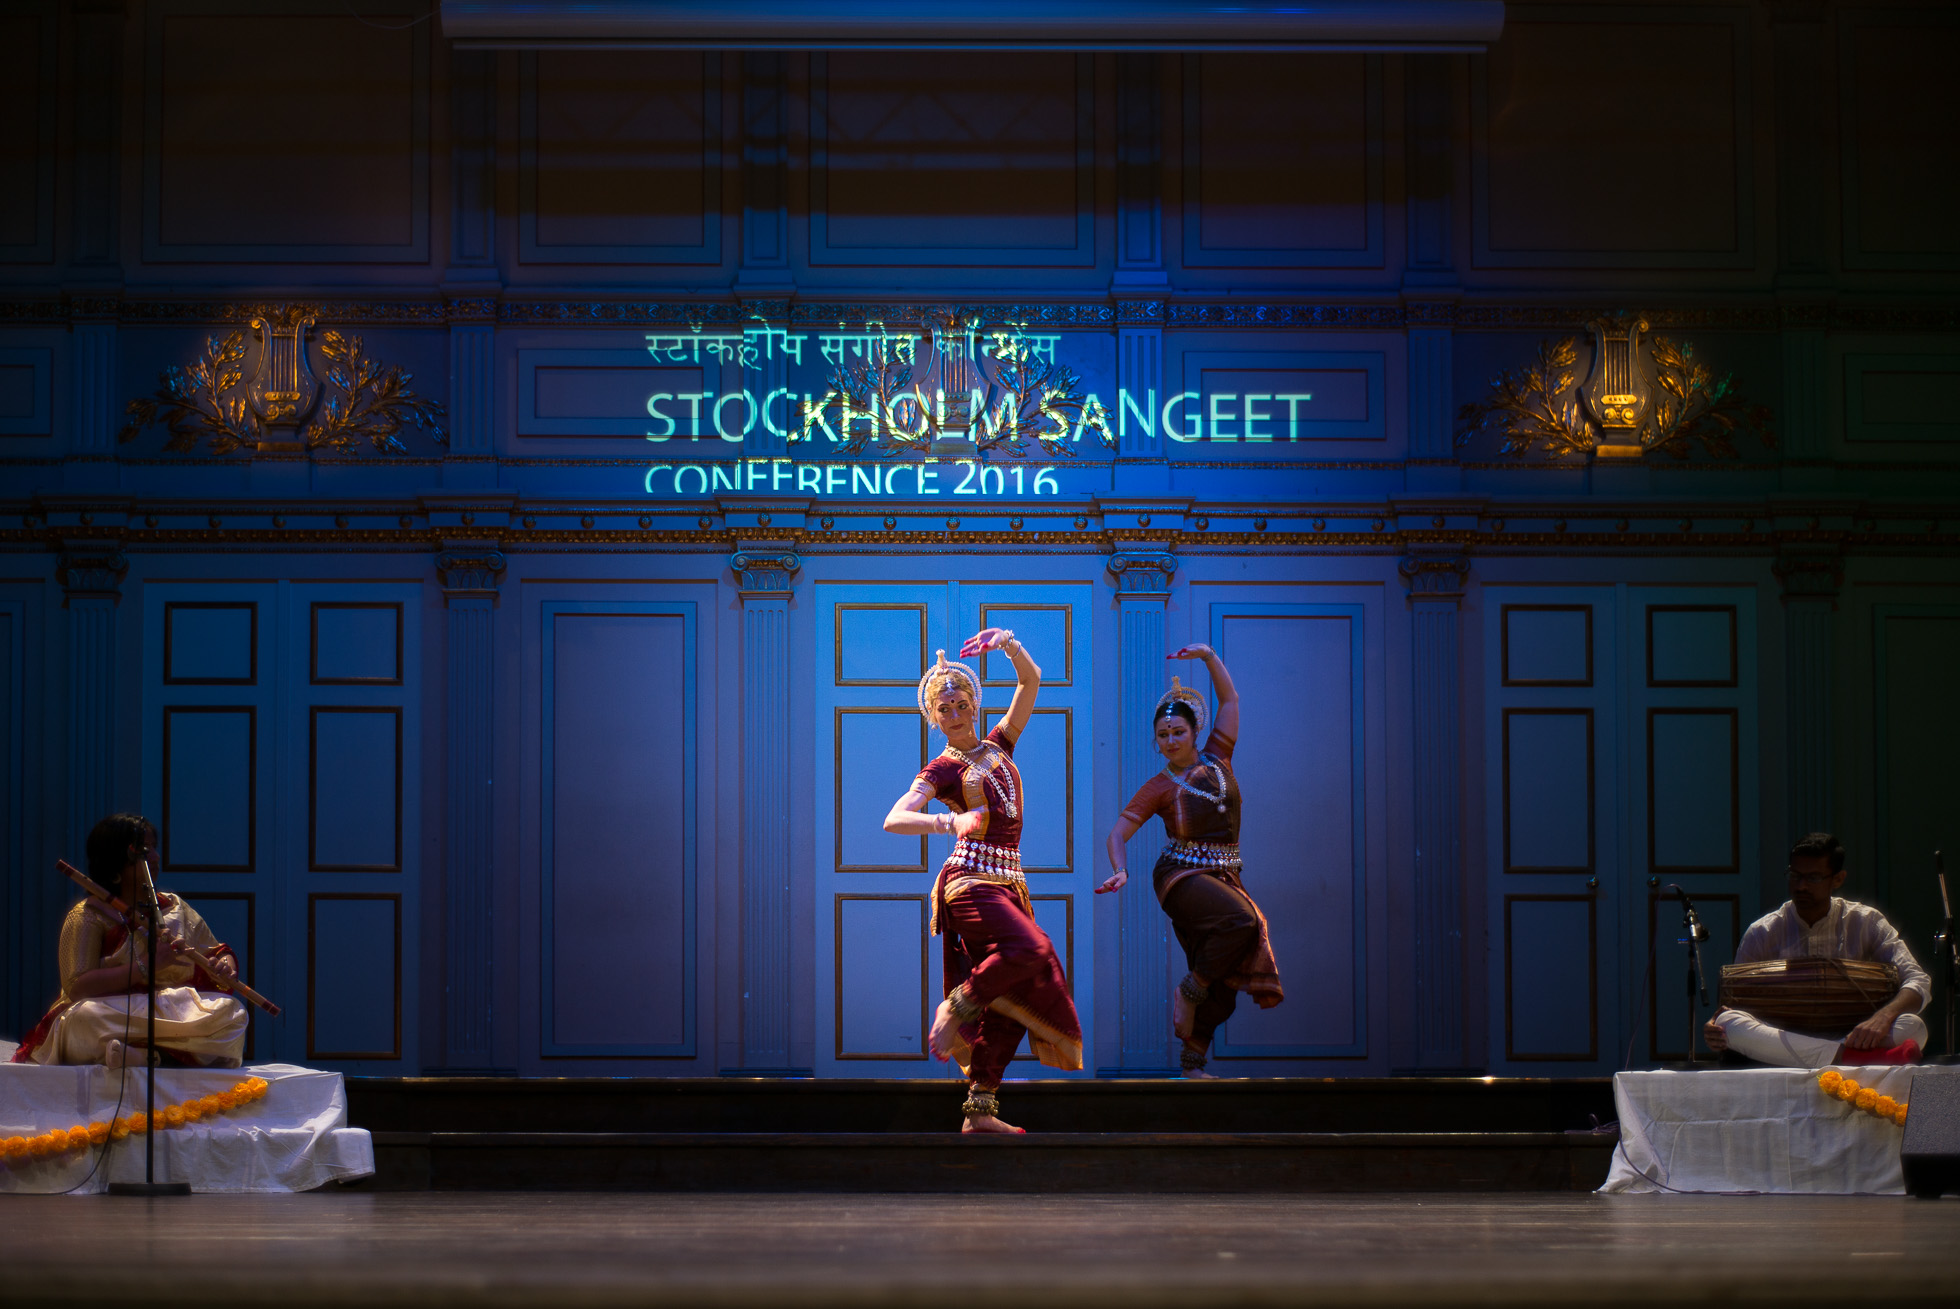 2016-10-16-stockholm-sangeet-conference-2016_2016-10-16_max-dahlstrand_0059